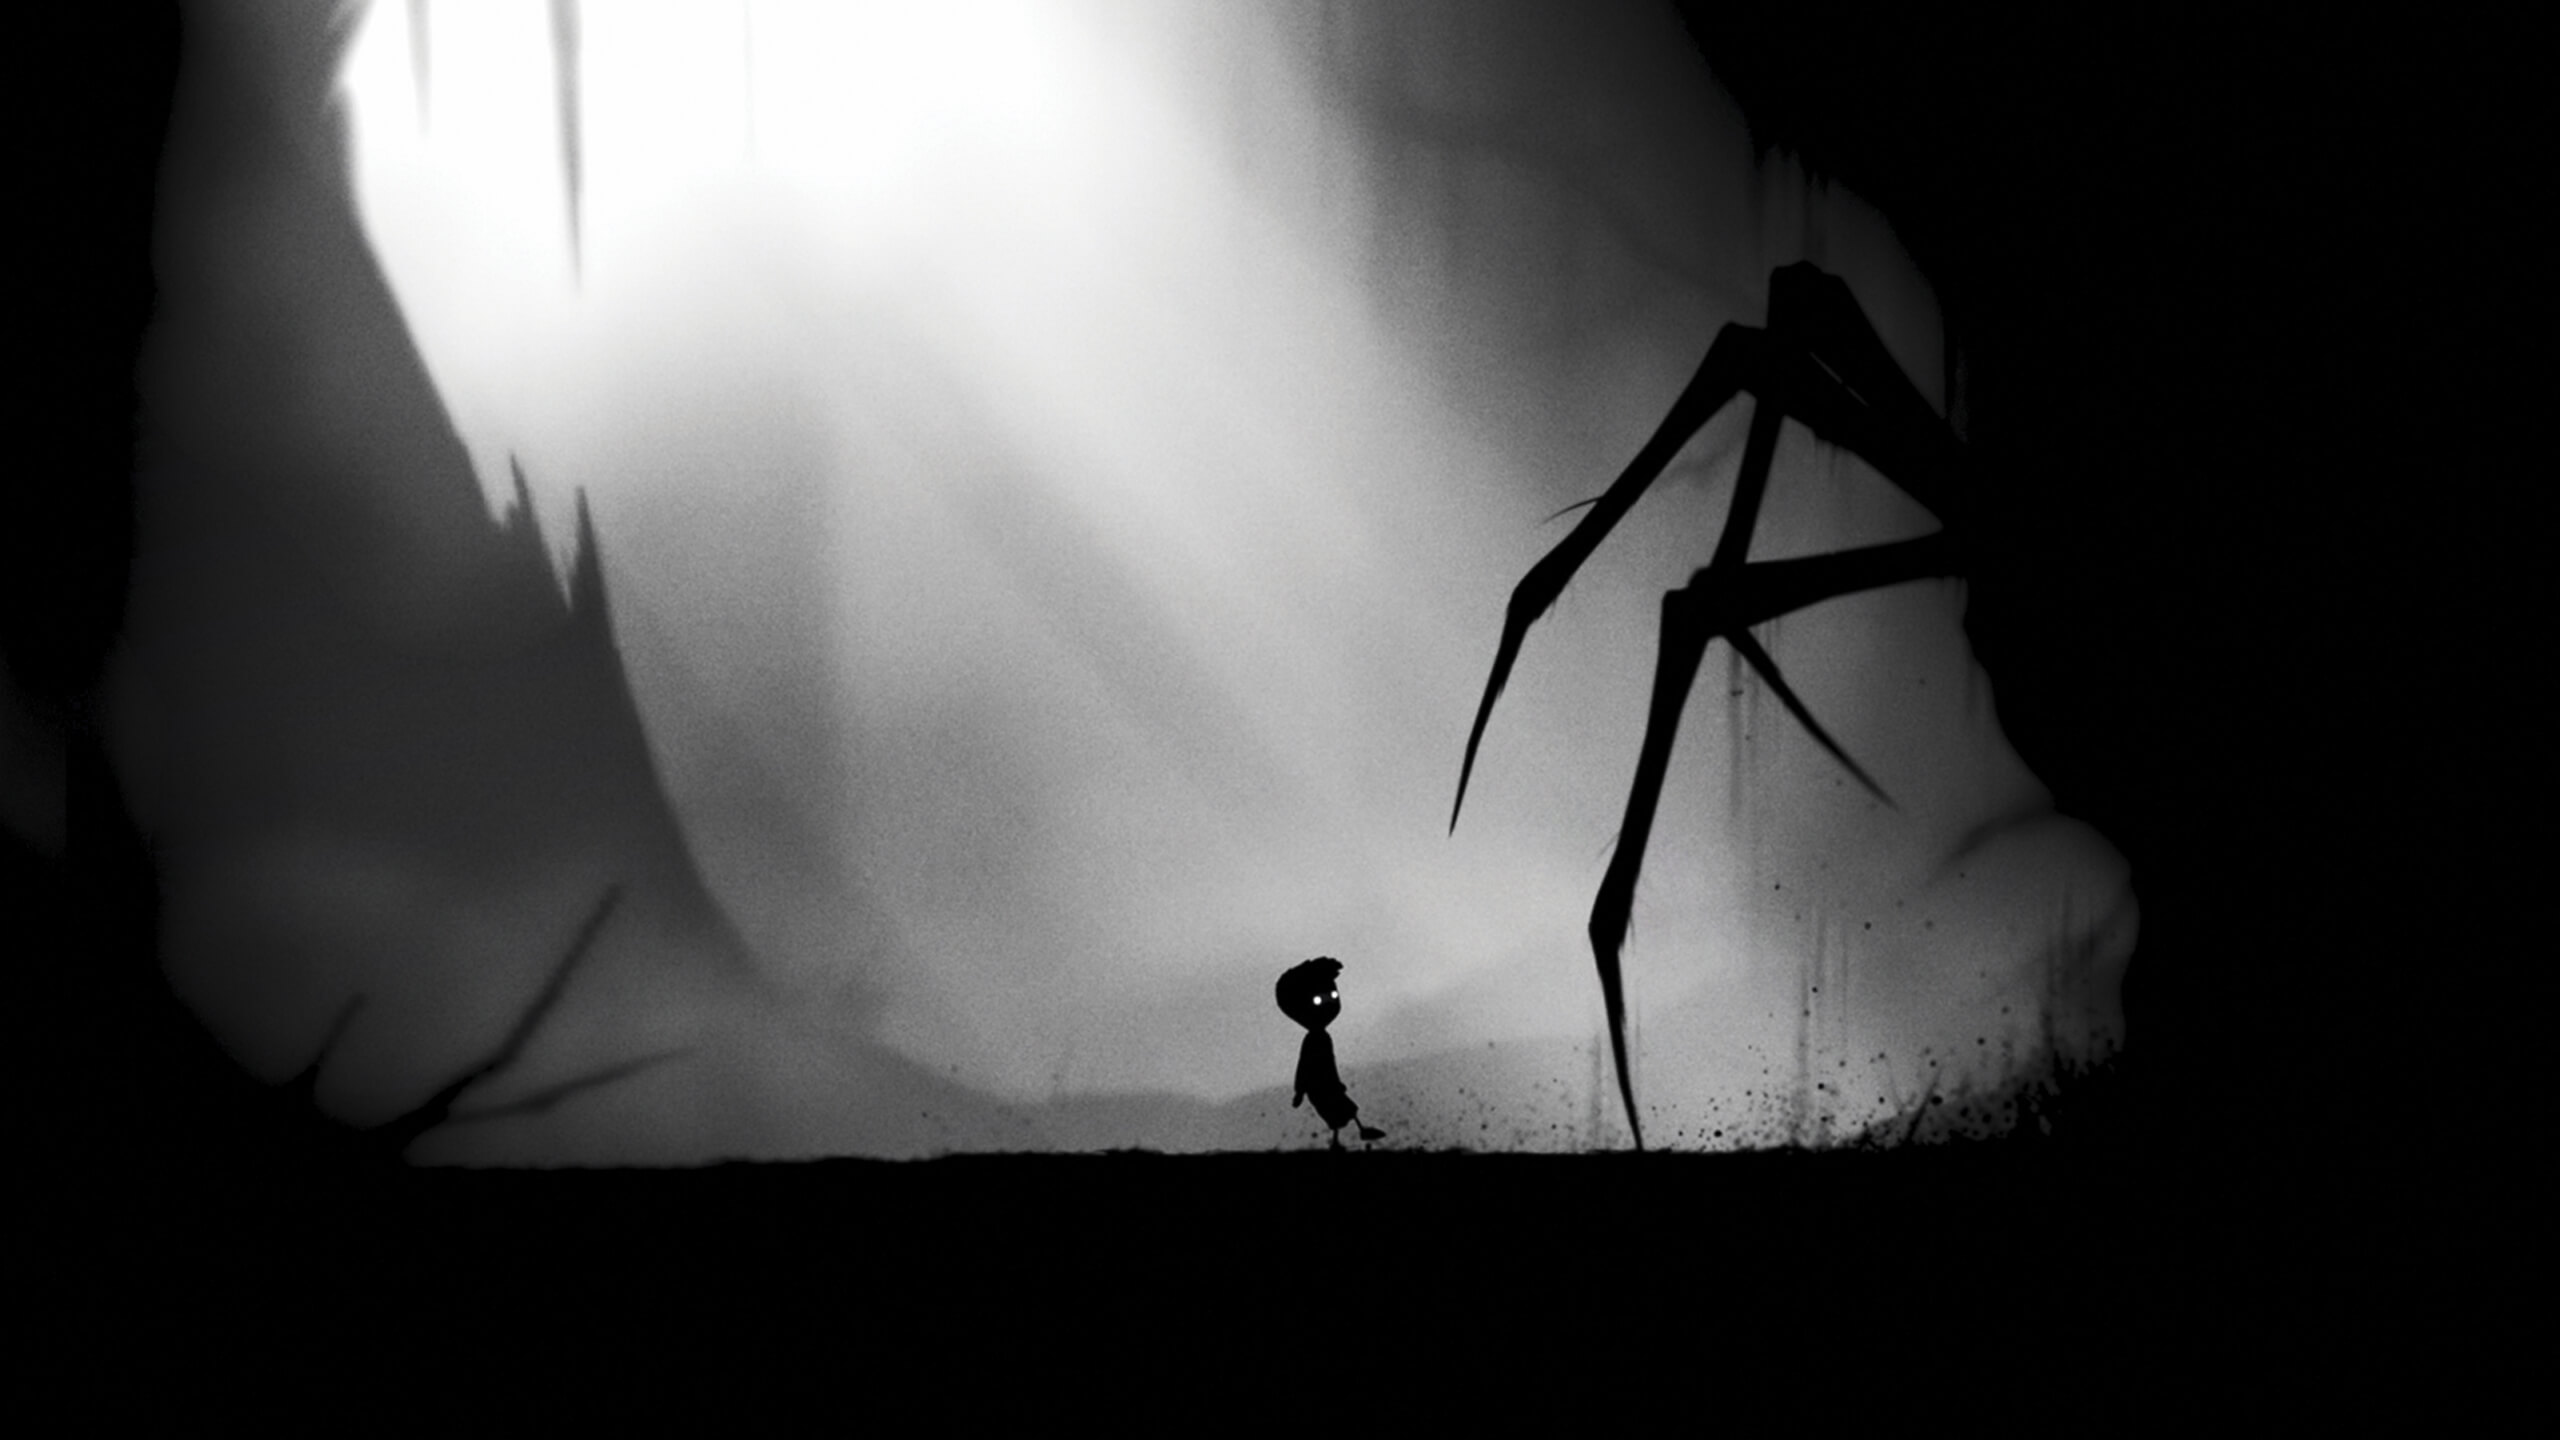 Limbo - From the creators of INSIDE